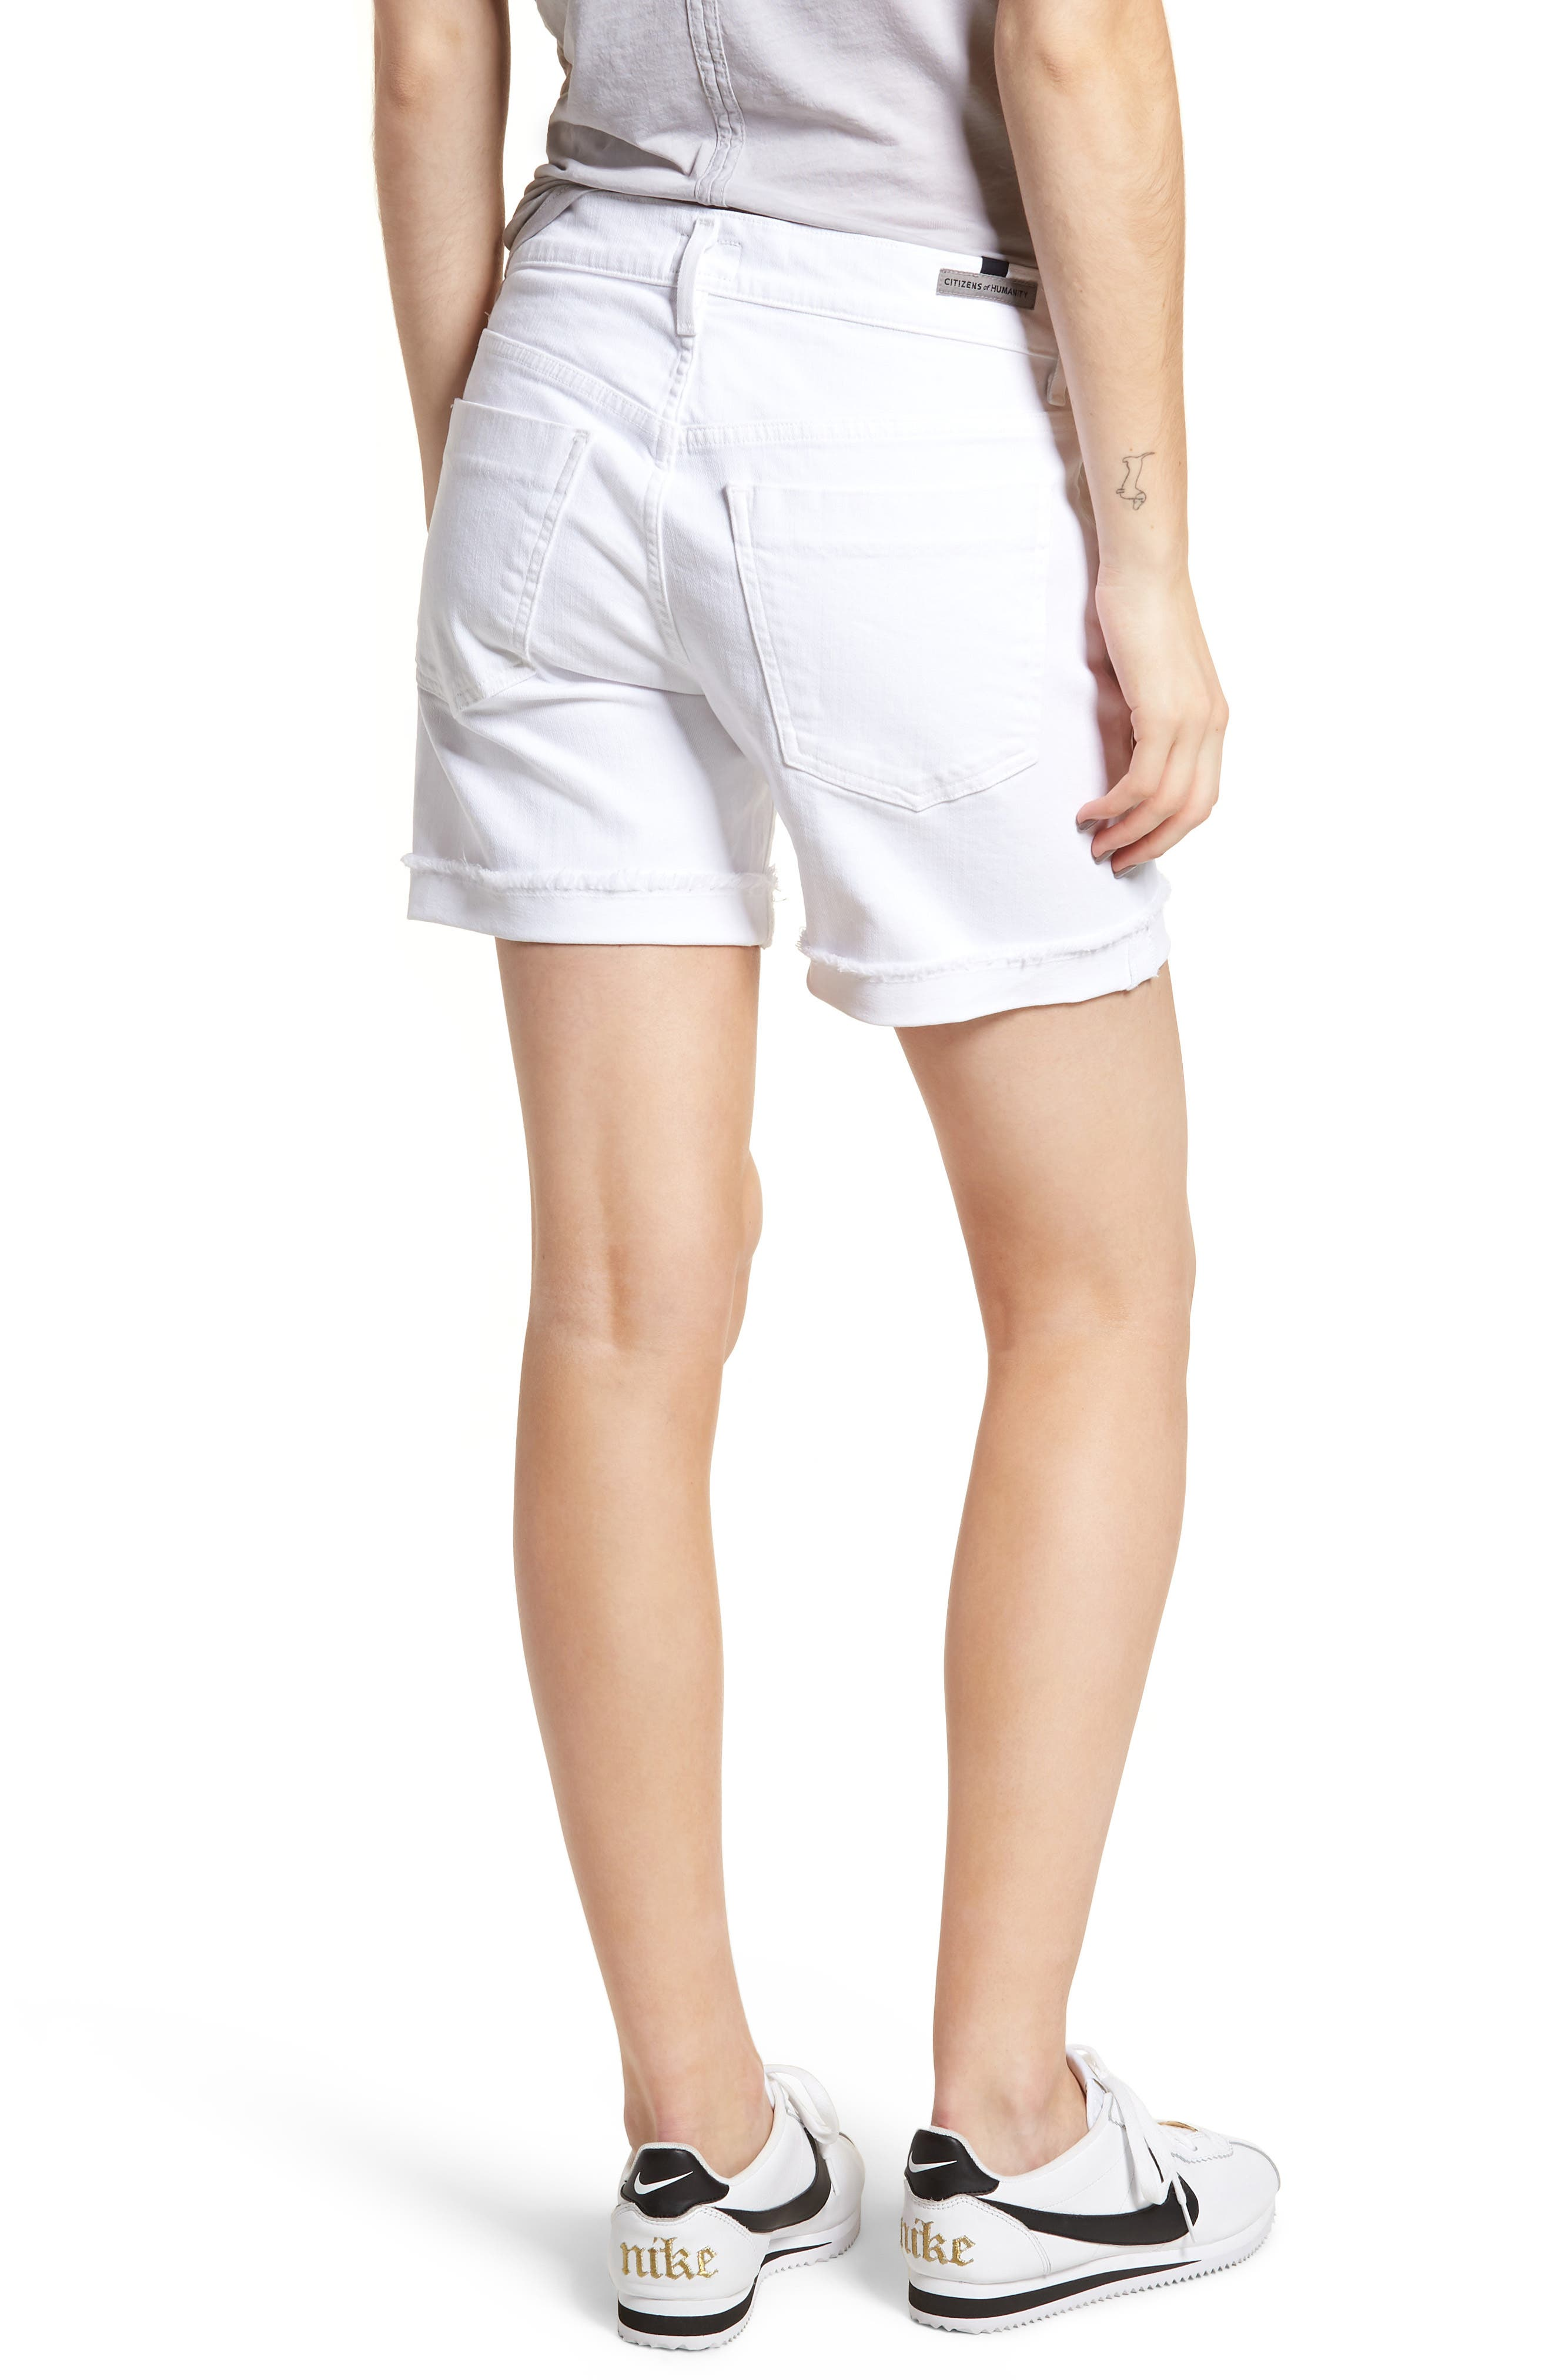 CITIZENS OF HUMANITY, Skyler Denim Shorts, Alternate thumbnail 2, color, OPTIC WHITE